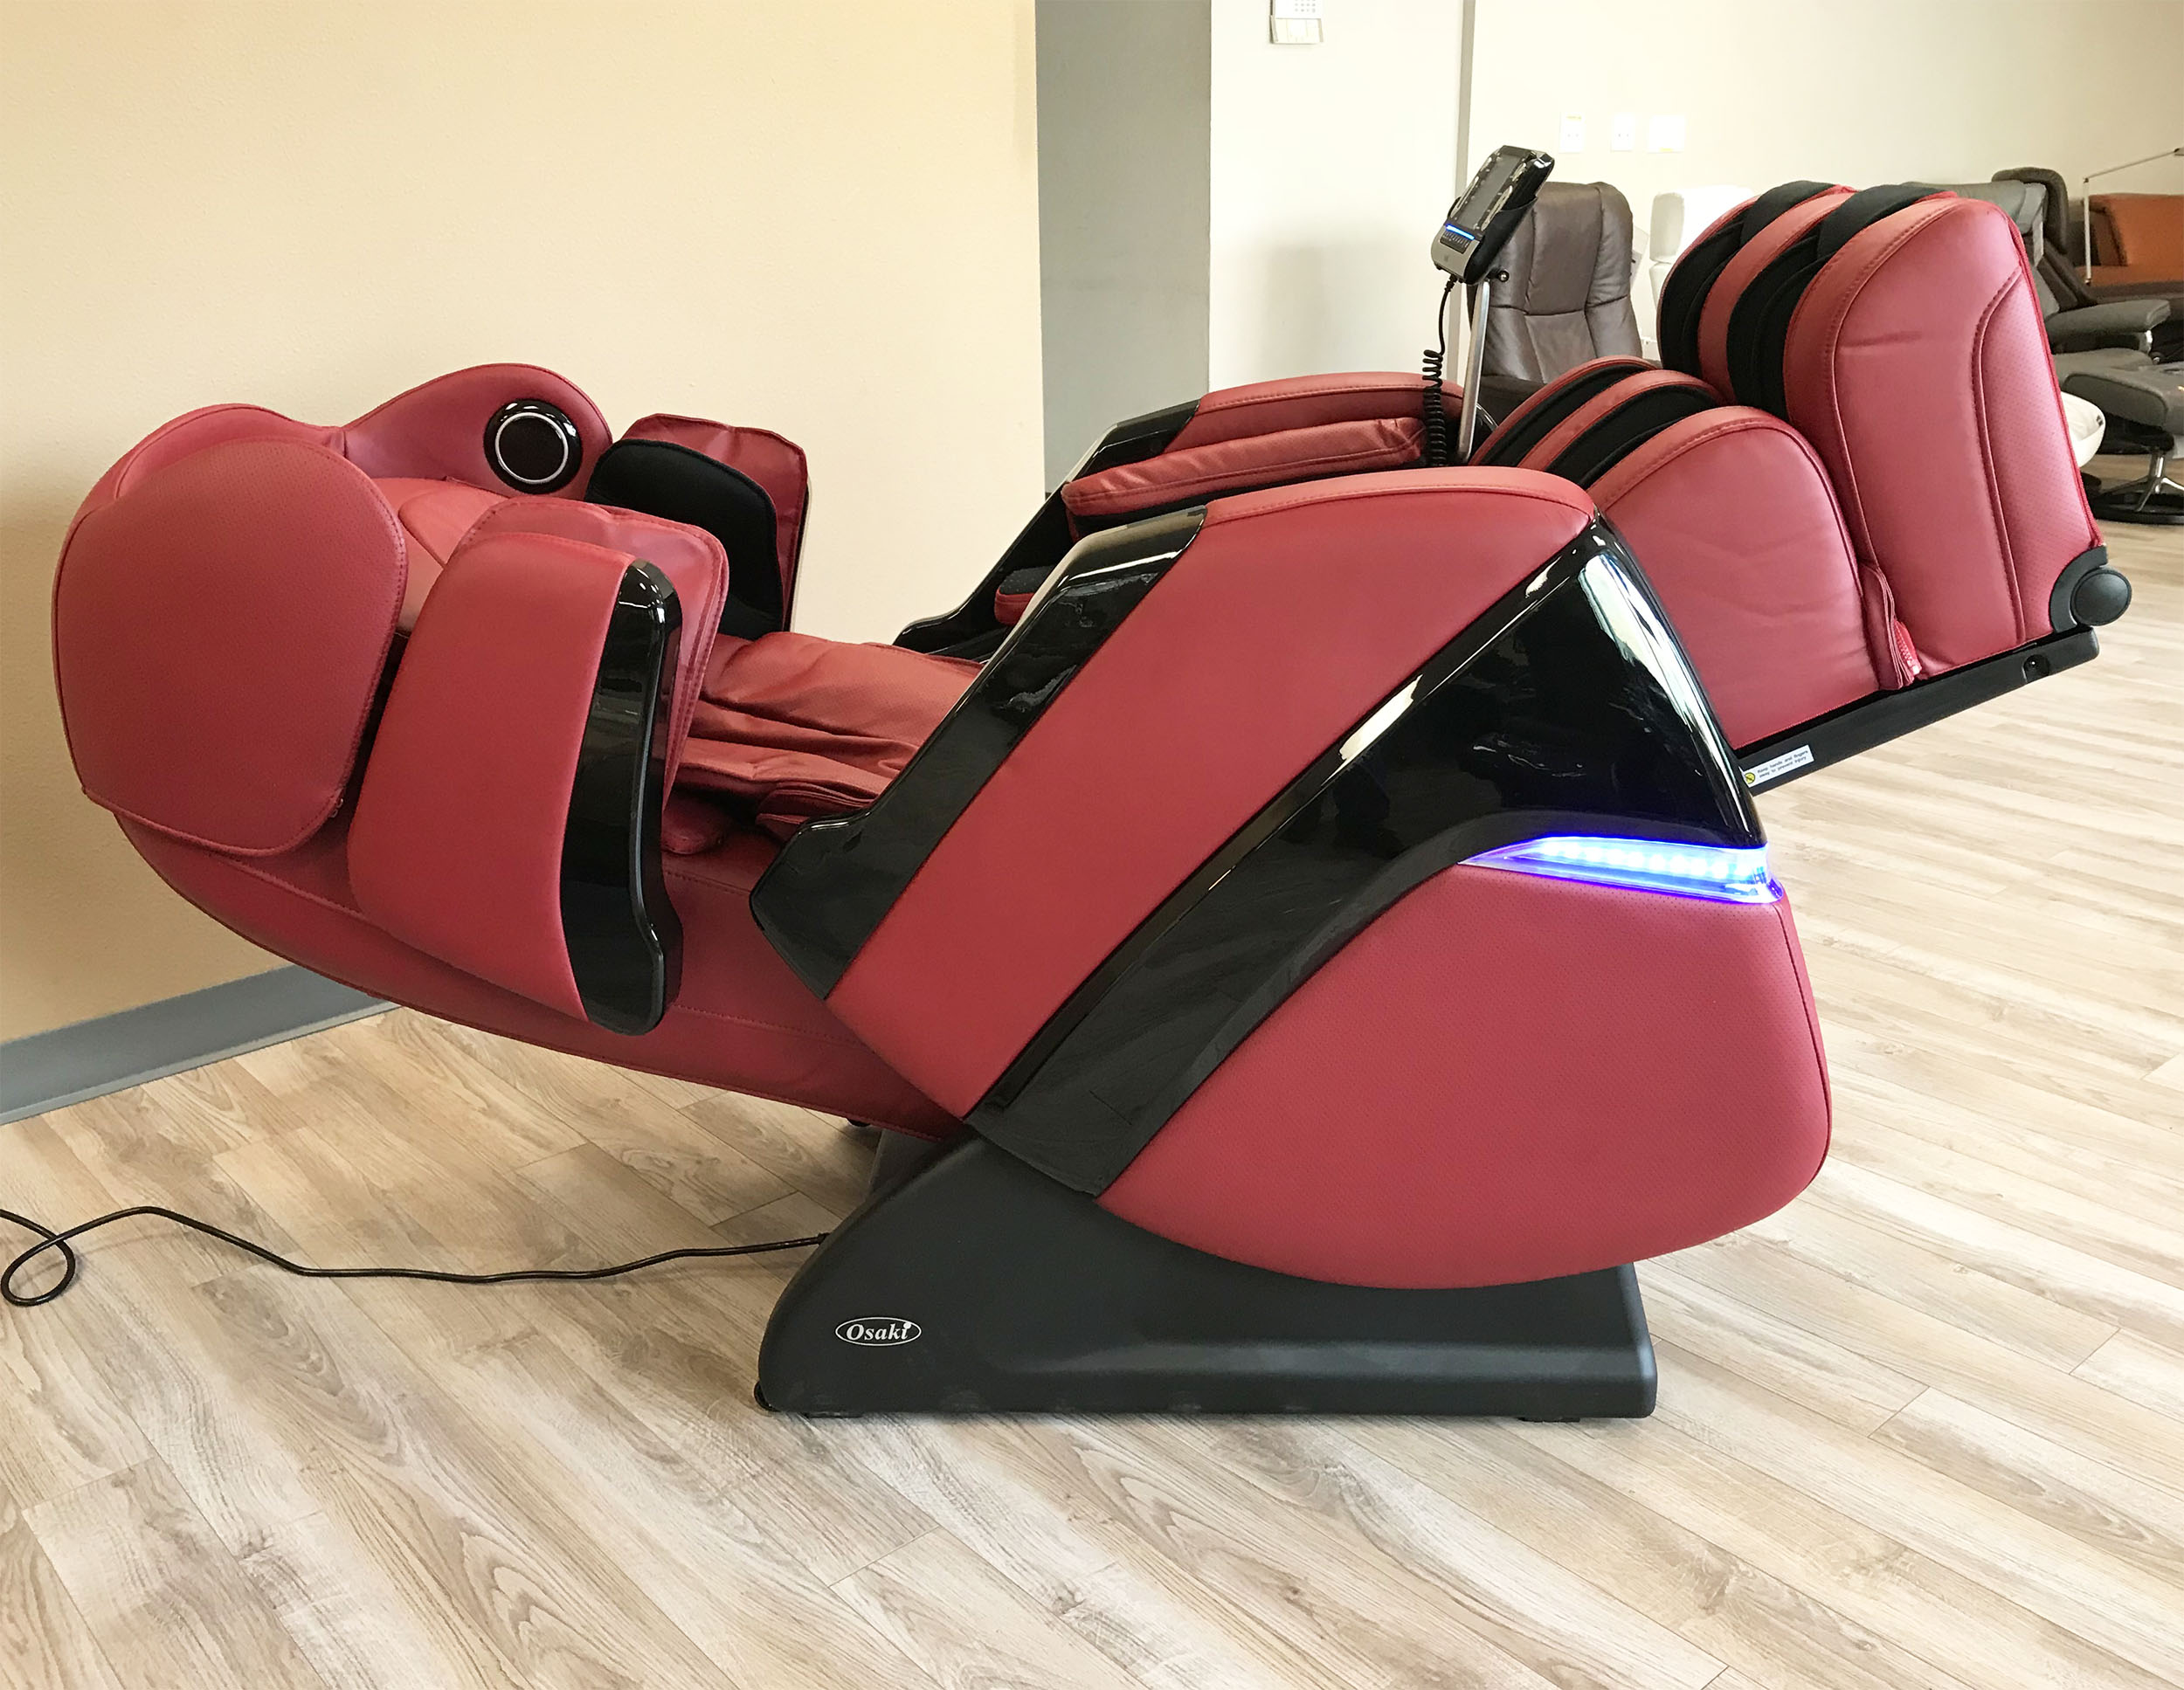 osaki os 3d cyber pro massage chair abaca dining chairs zero gravity recliner and